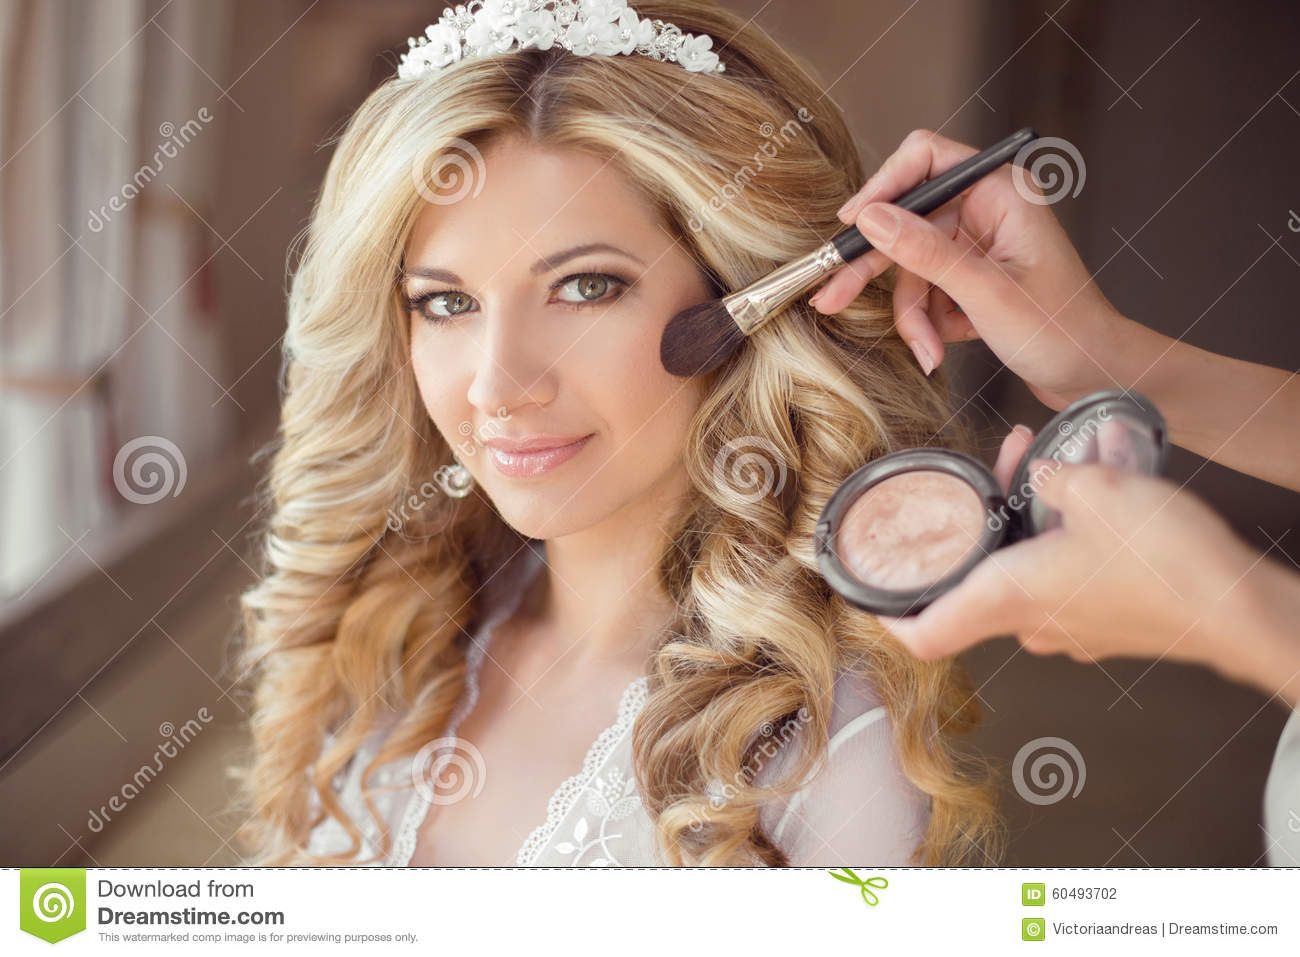 Healthy Hair Styles: Make Up Rouge. Healthy Hair. Beautiful Smiling Bride